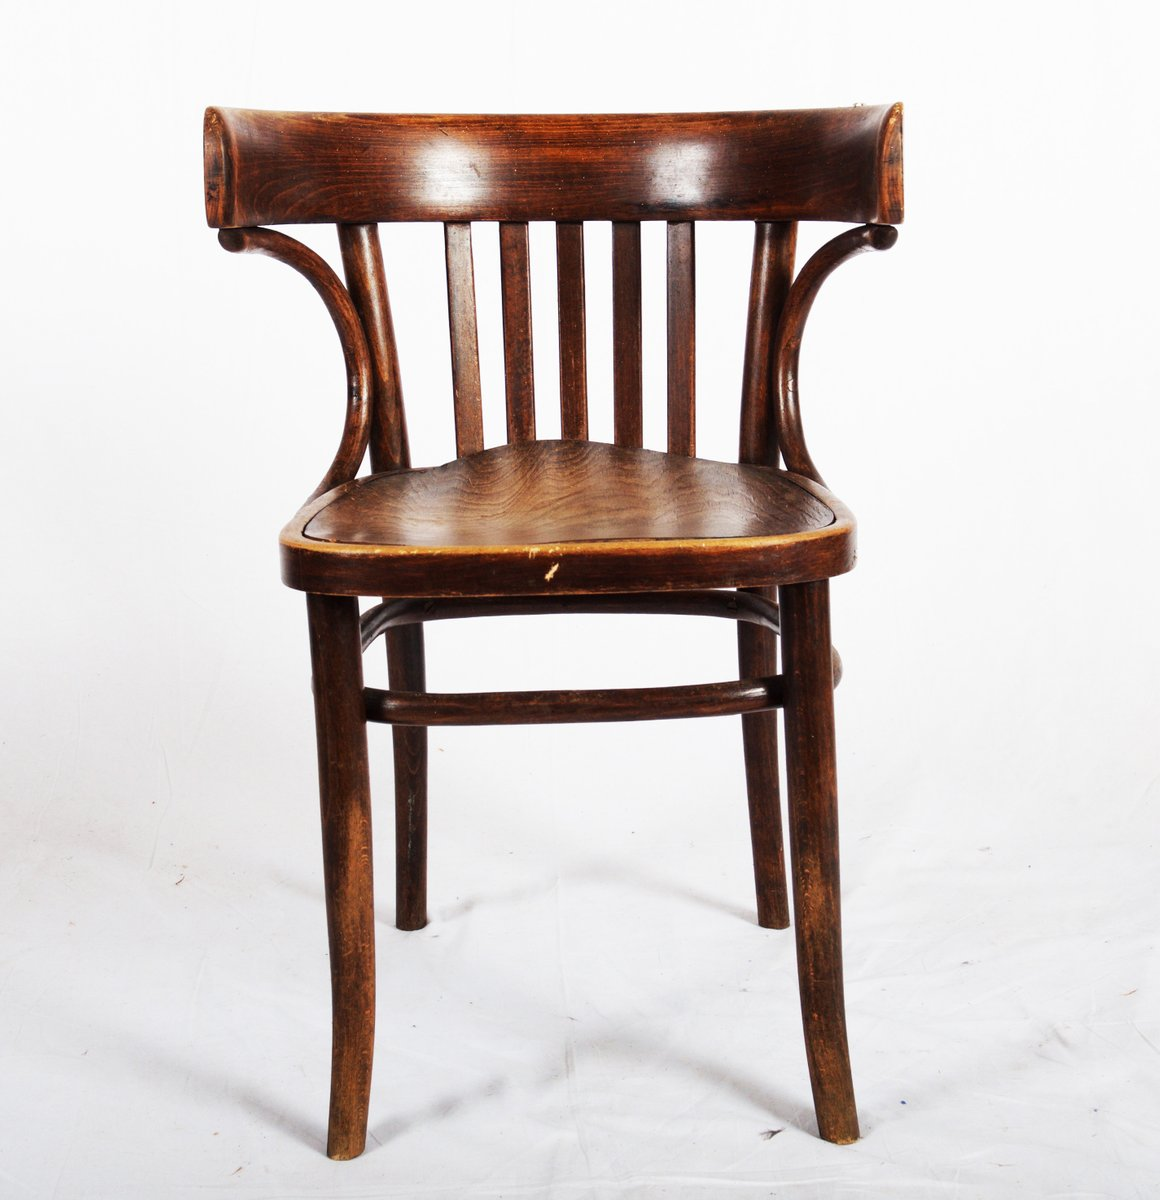 Bistro Dining Chair By Michael Thonet 1920s For Sale At Pamono